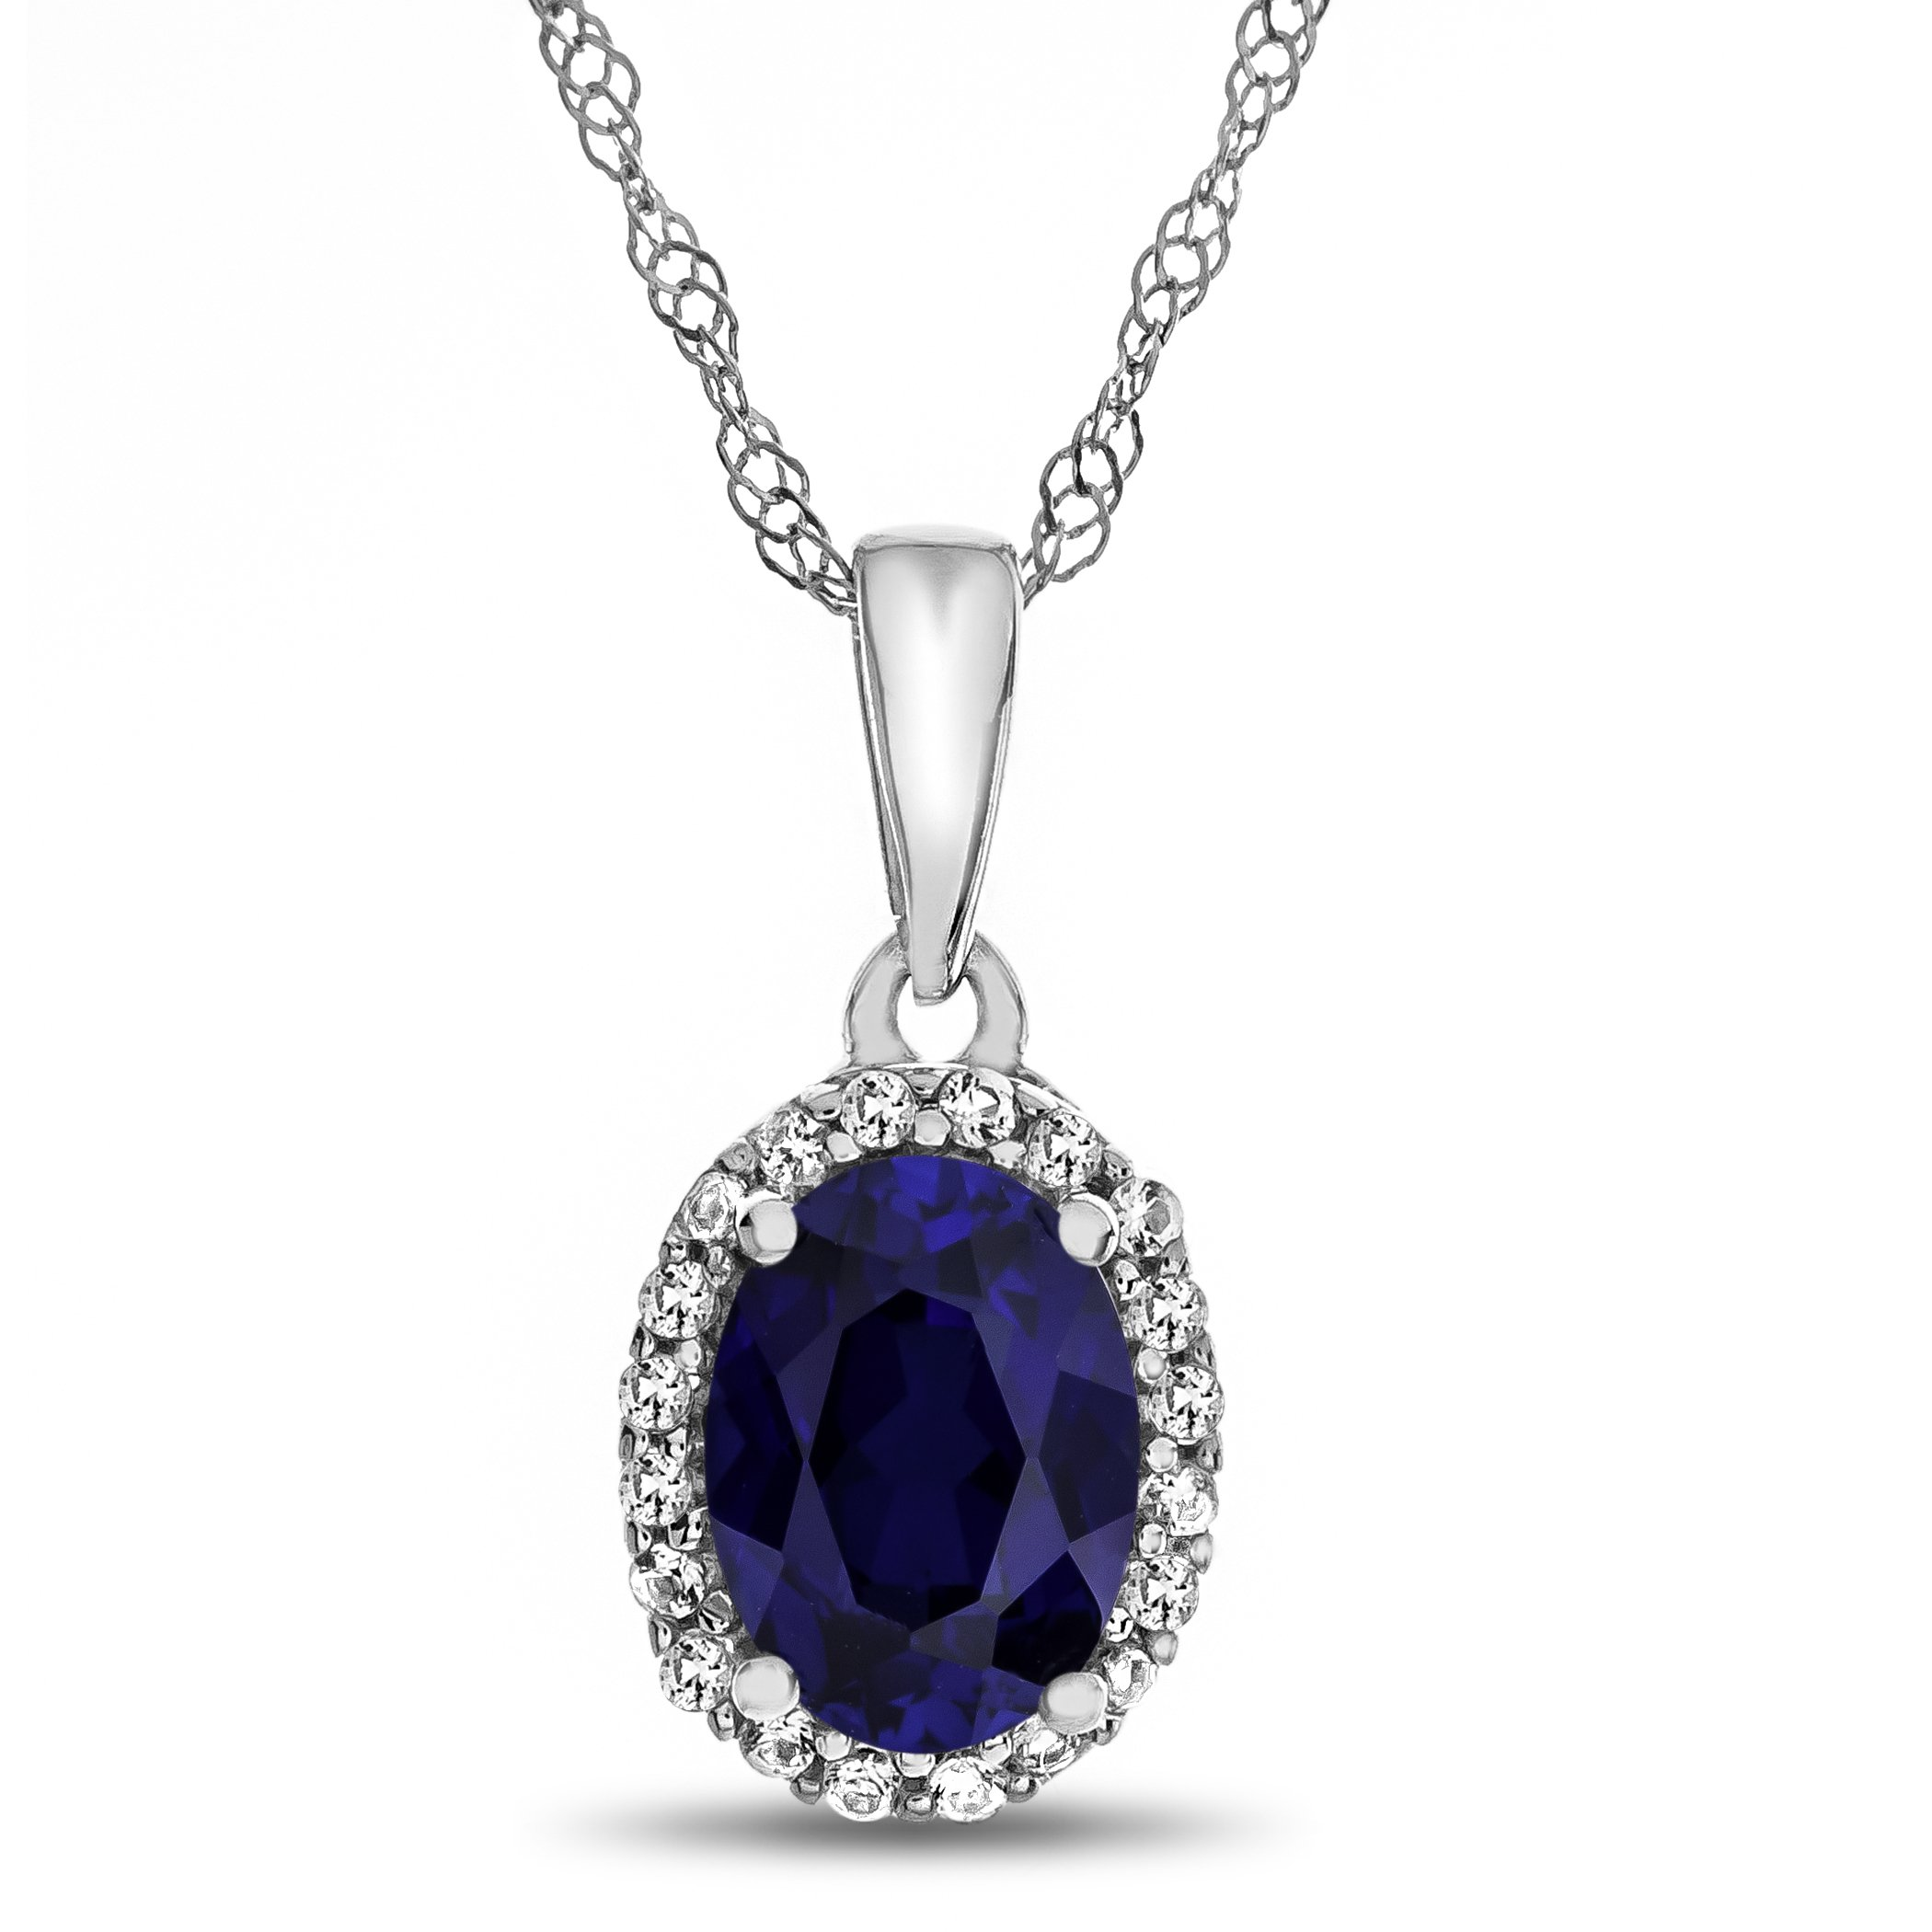 Finejewelers 10k 7x5mm Oval Created Sapphire with White Topaz accent stones Halo Pendant Necklace